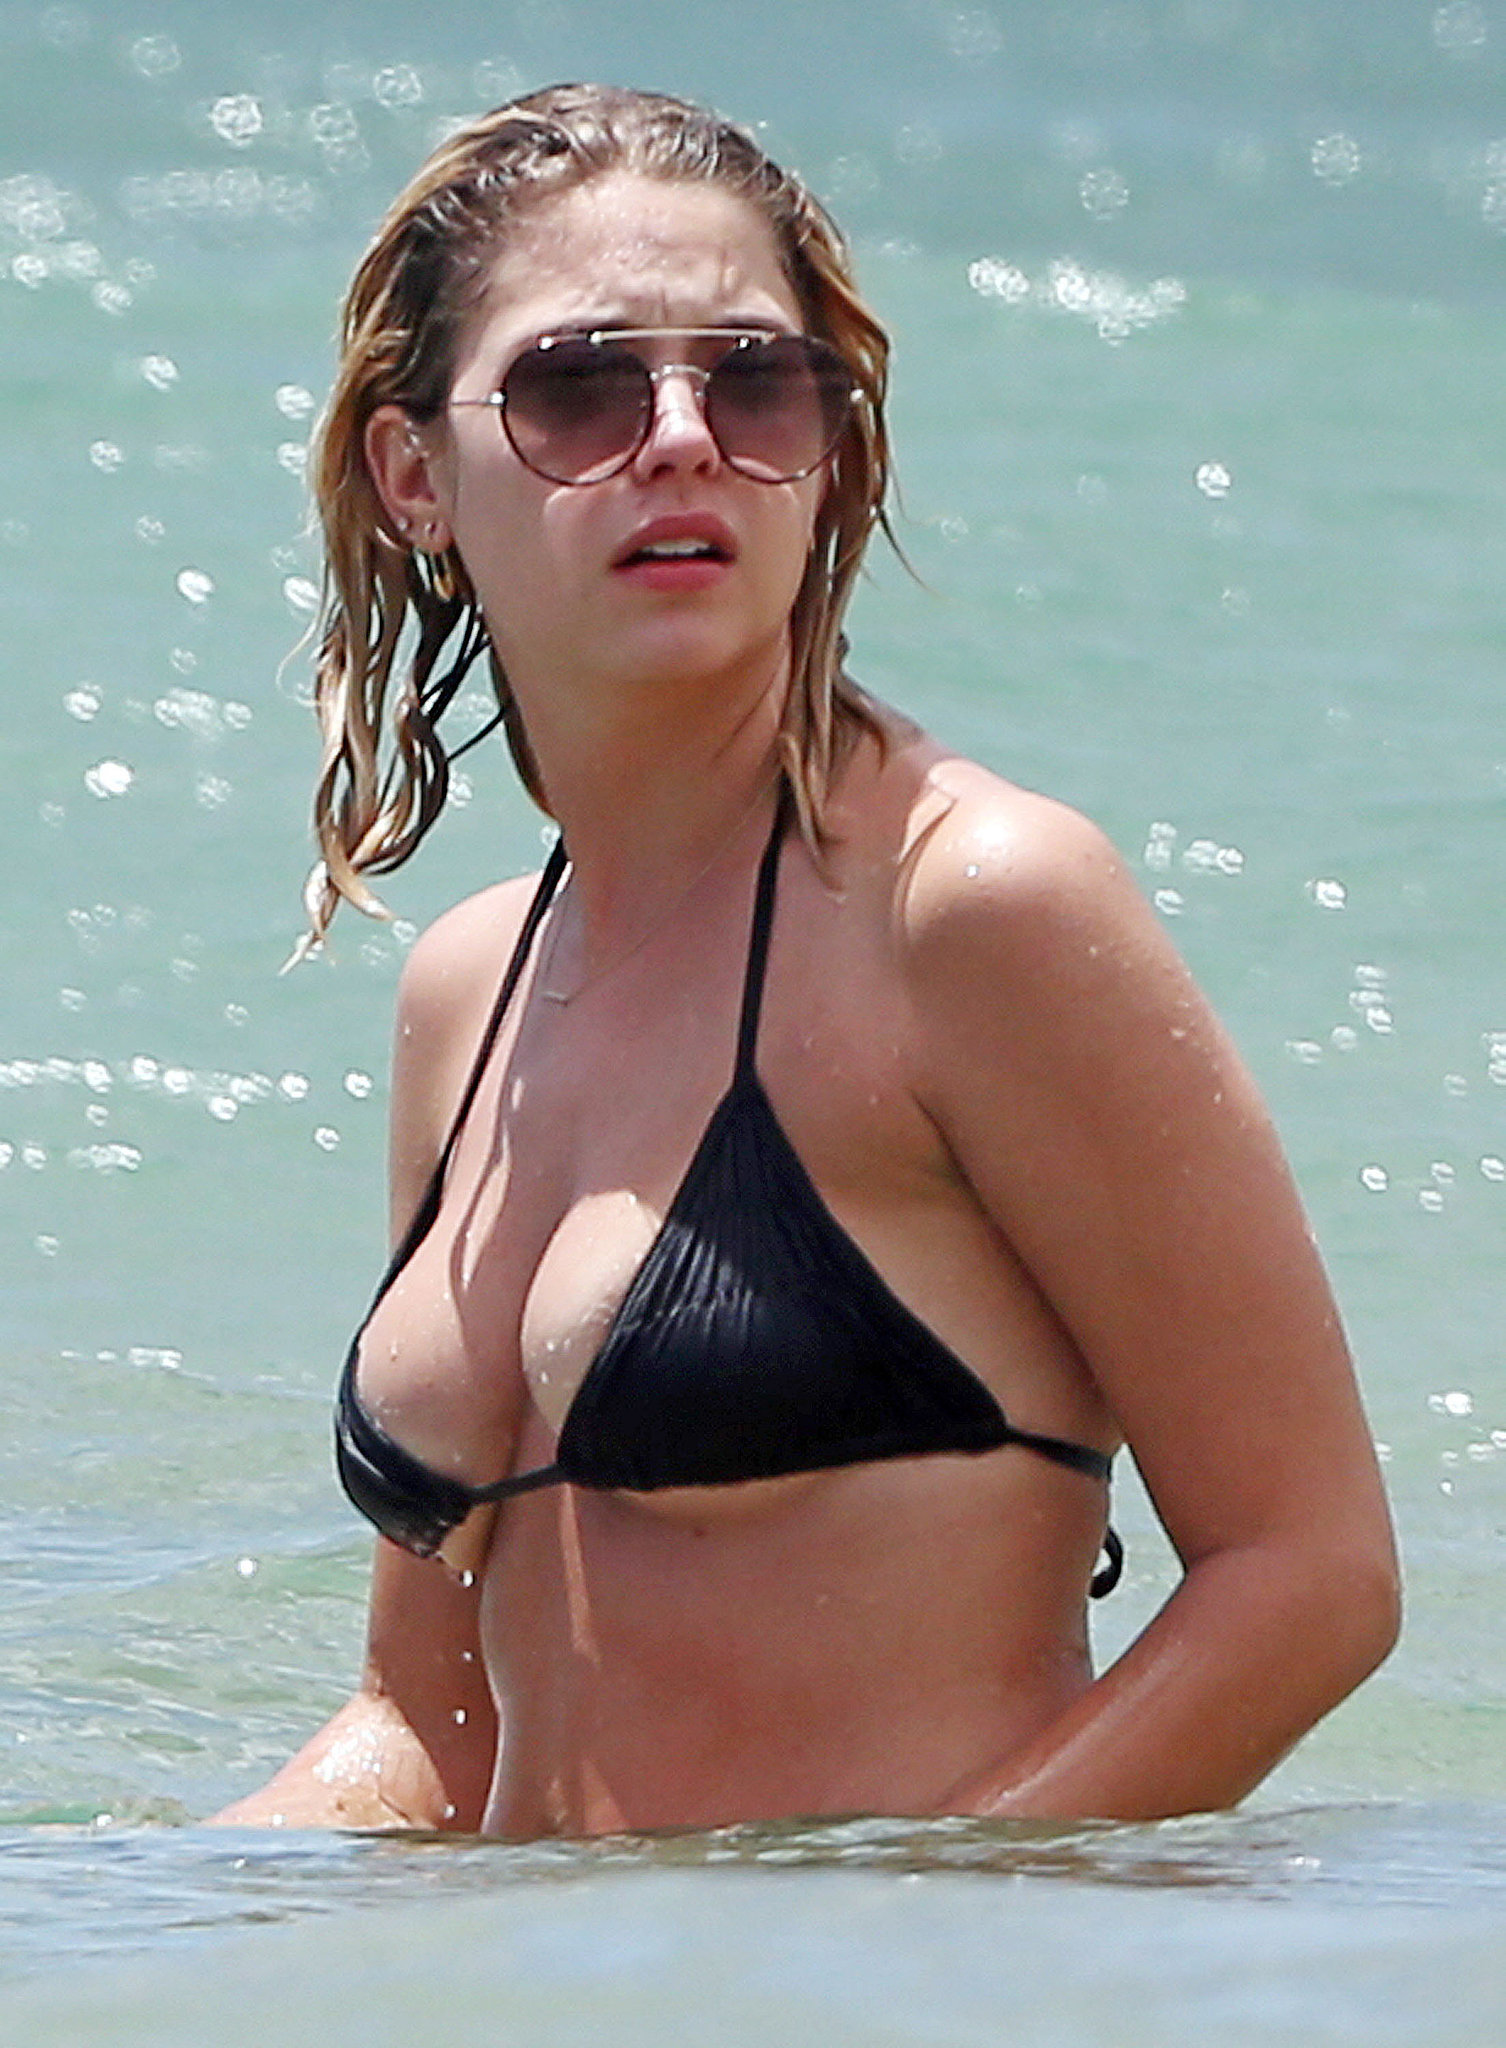 Ashley Benson Bikini Bodies